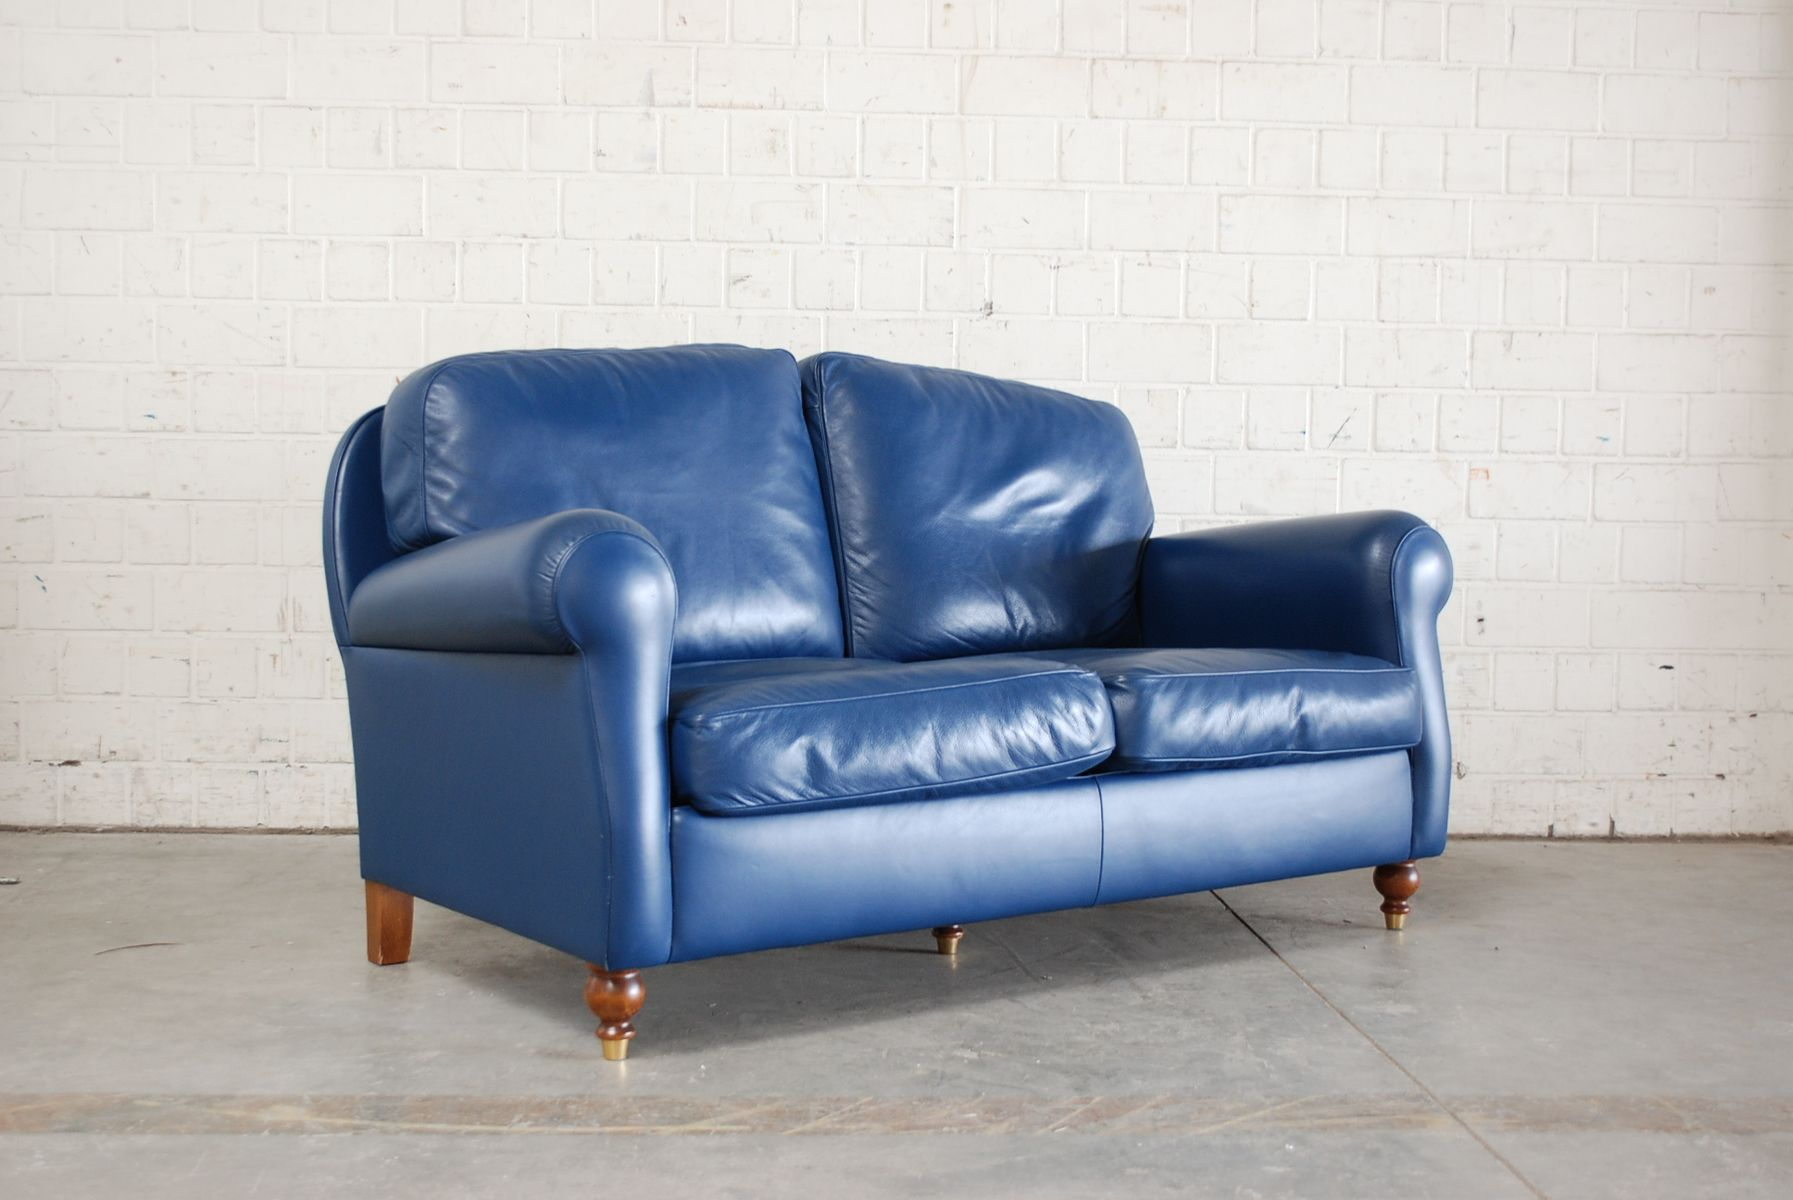 Blue leather george sofa from poltrona frau 1999 for sale for Blue sofas for sale